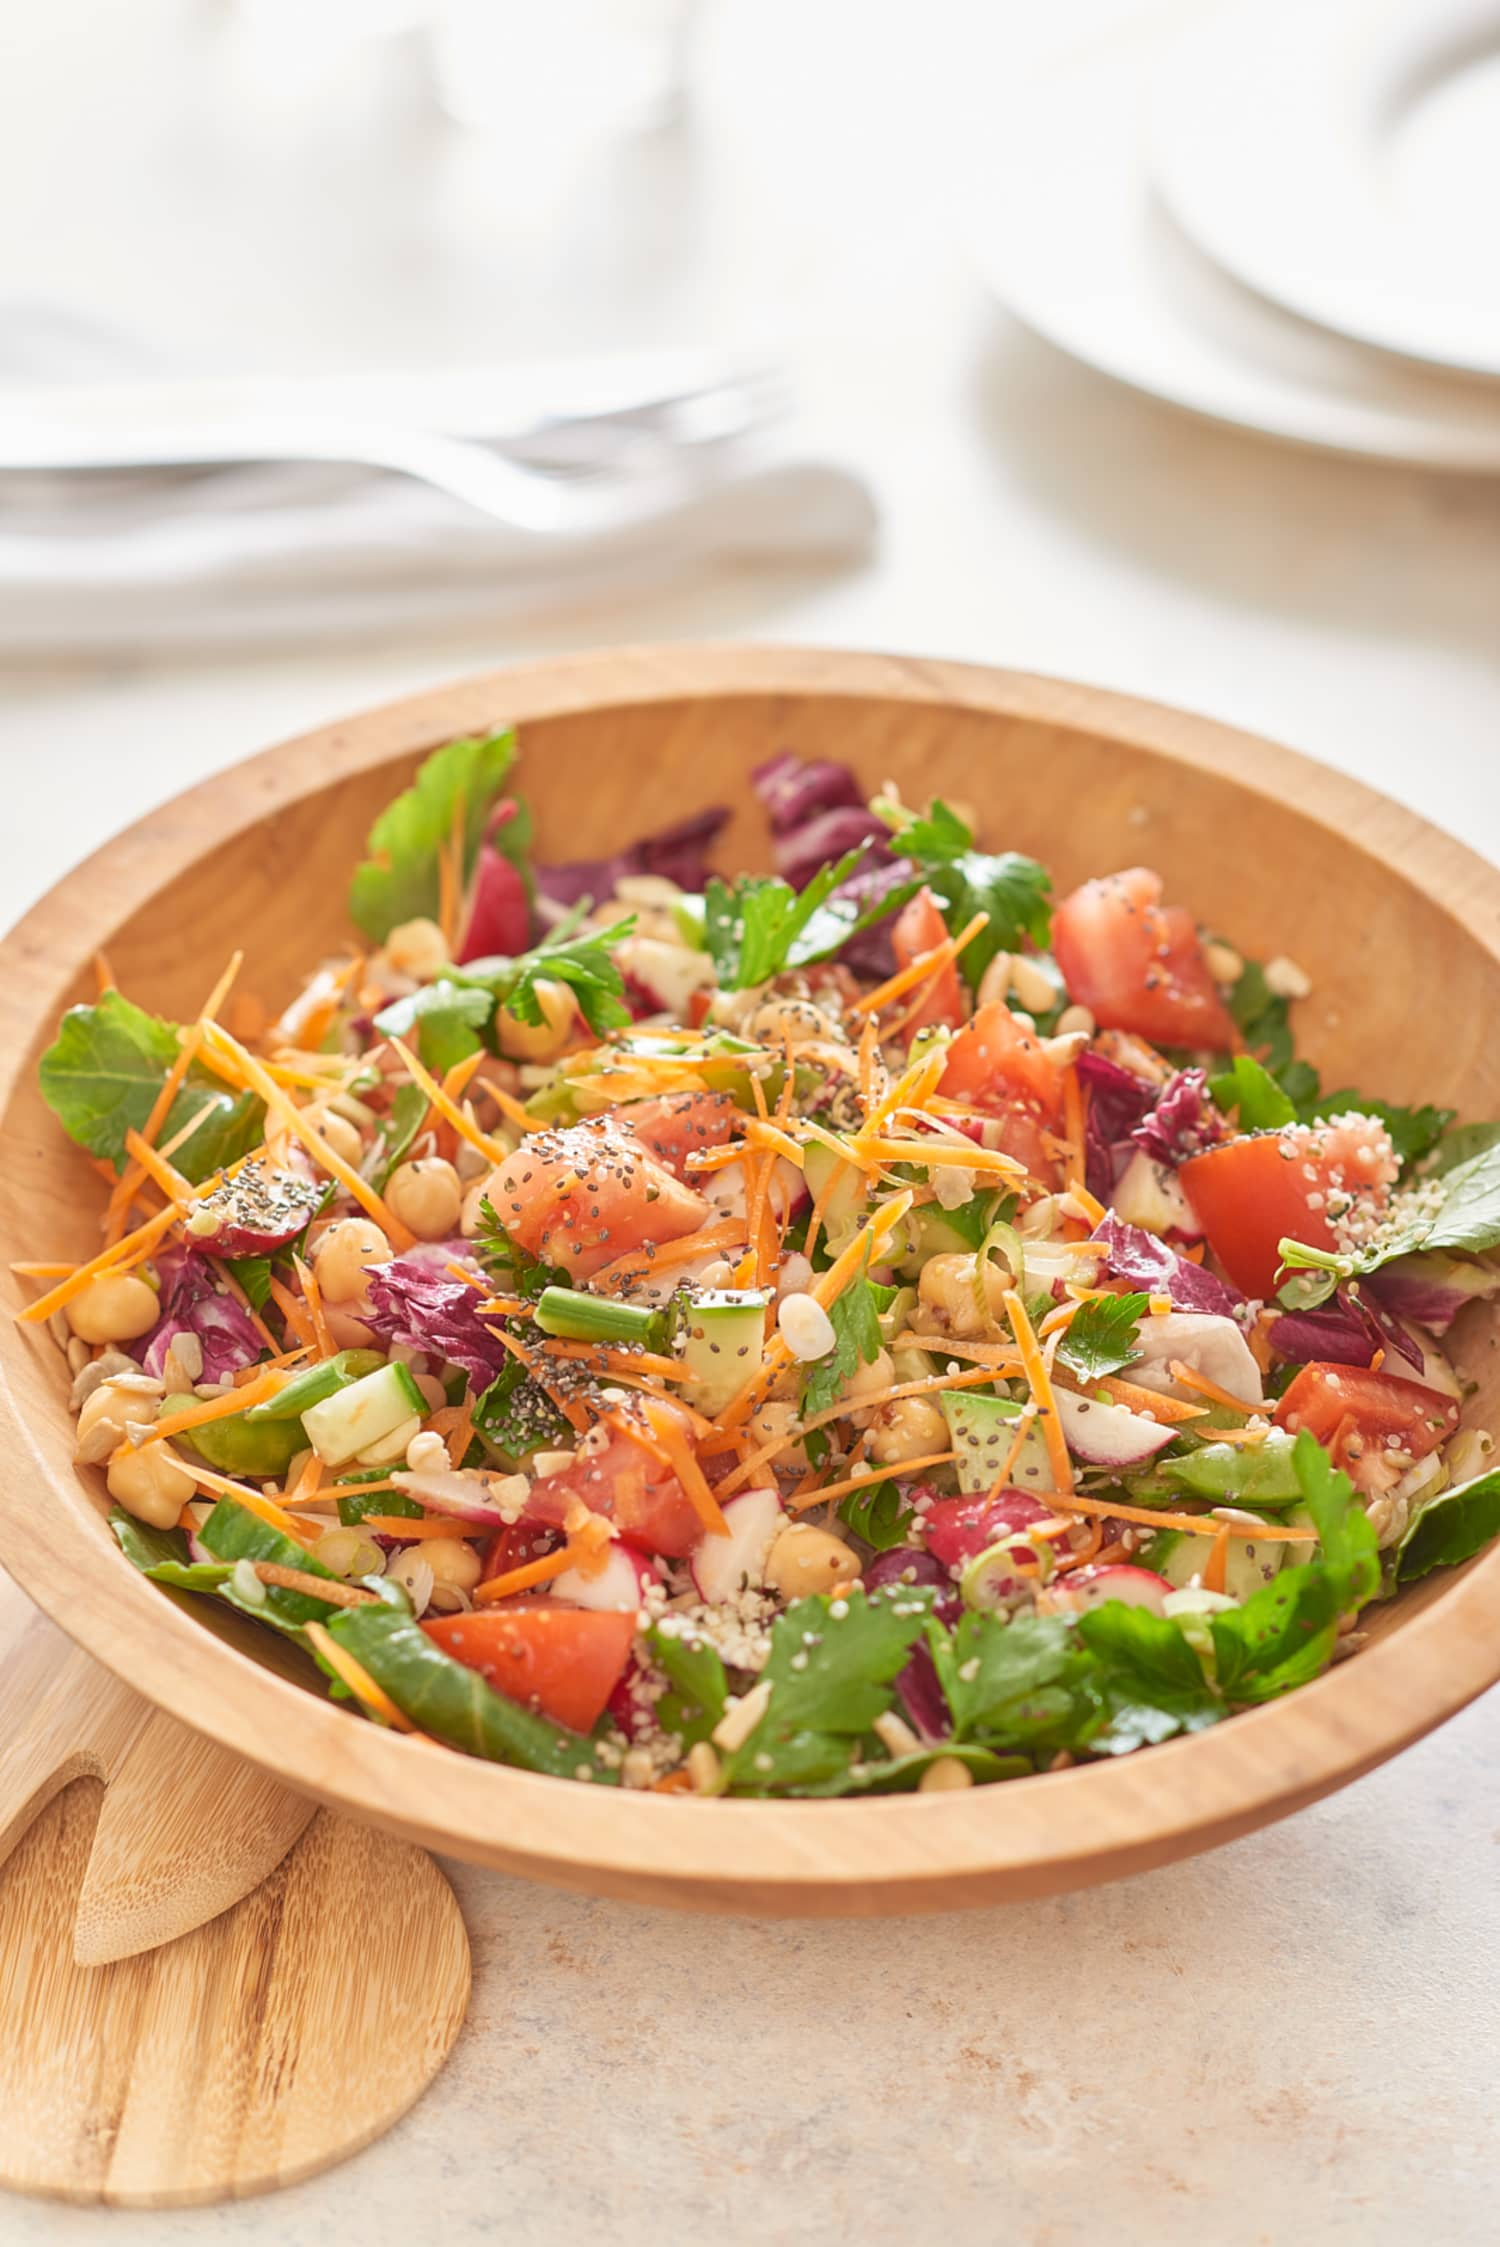 Recipe: Make-Ahead Chicken and Veggie Chopped Salad